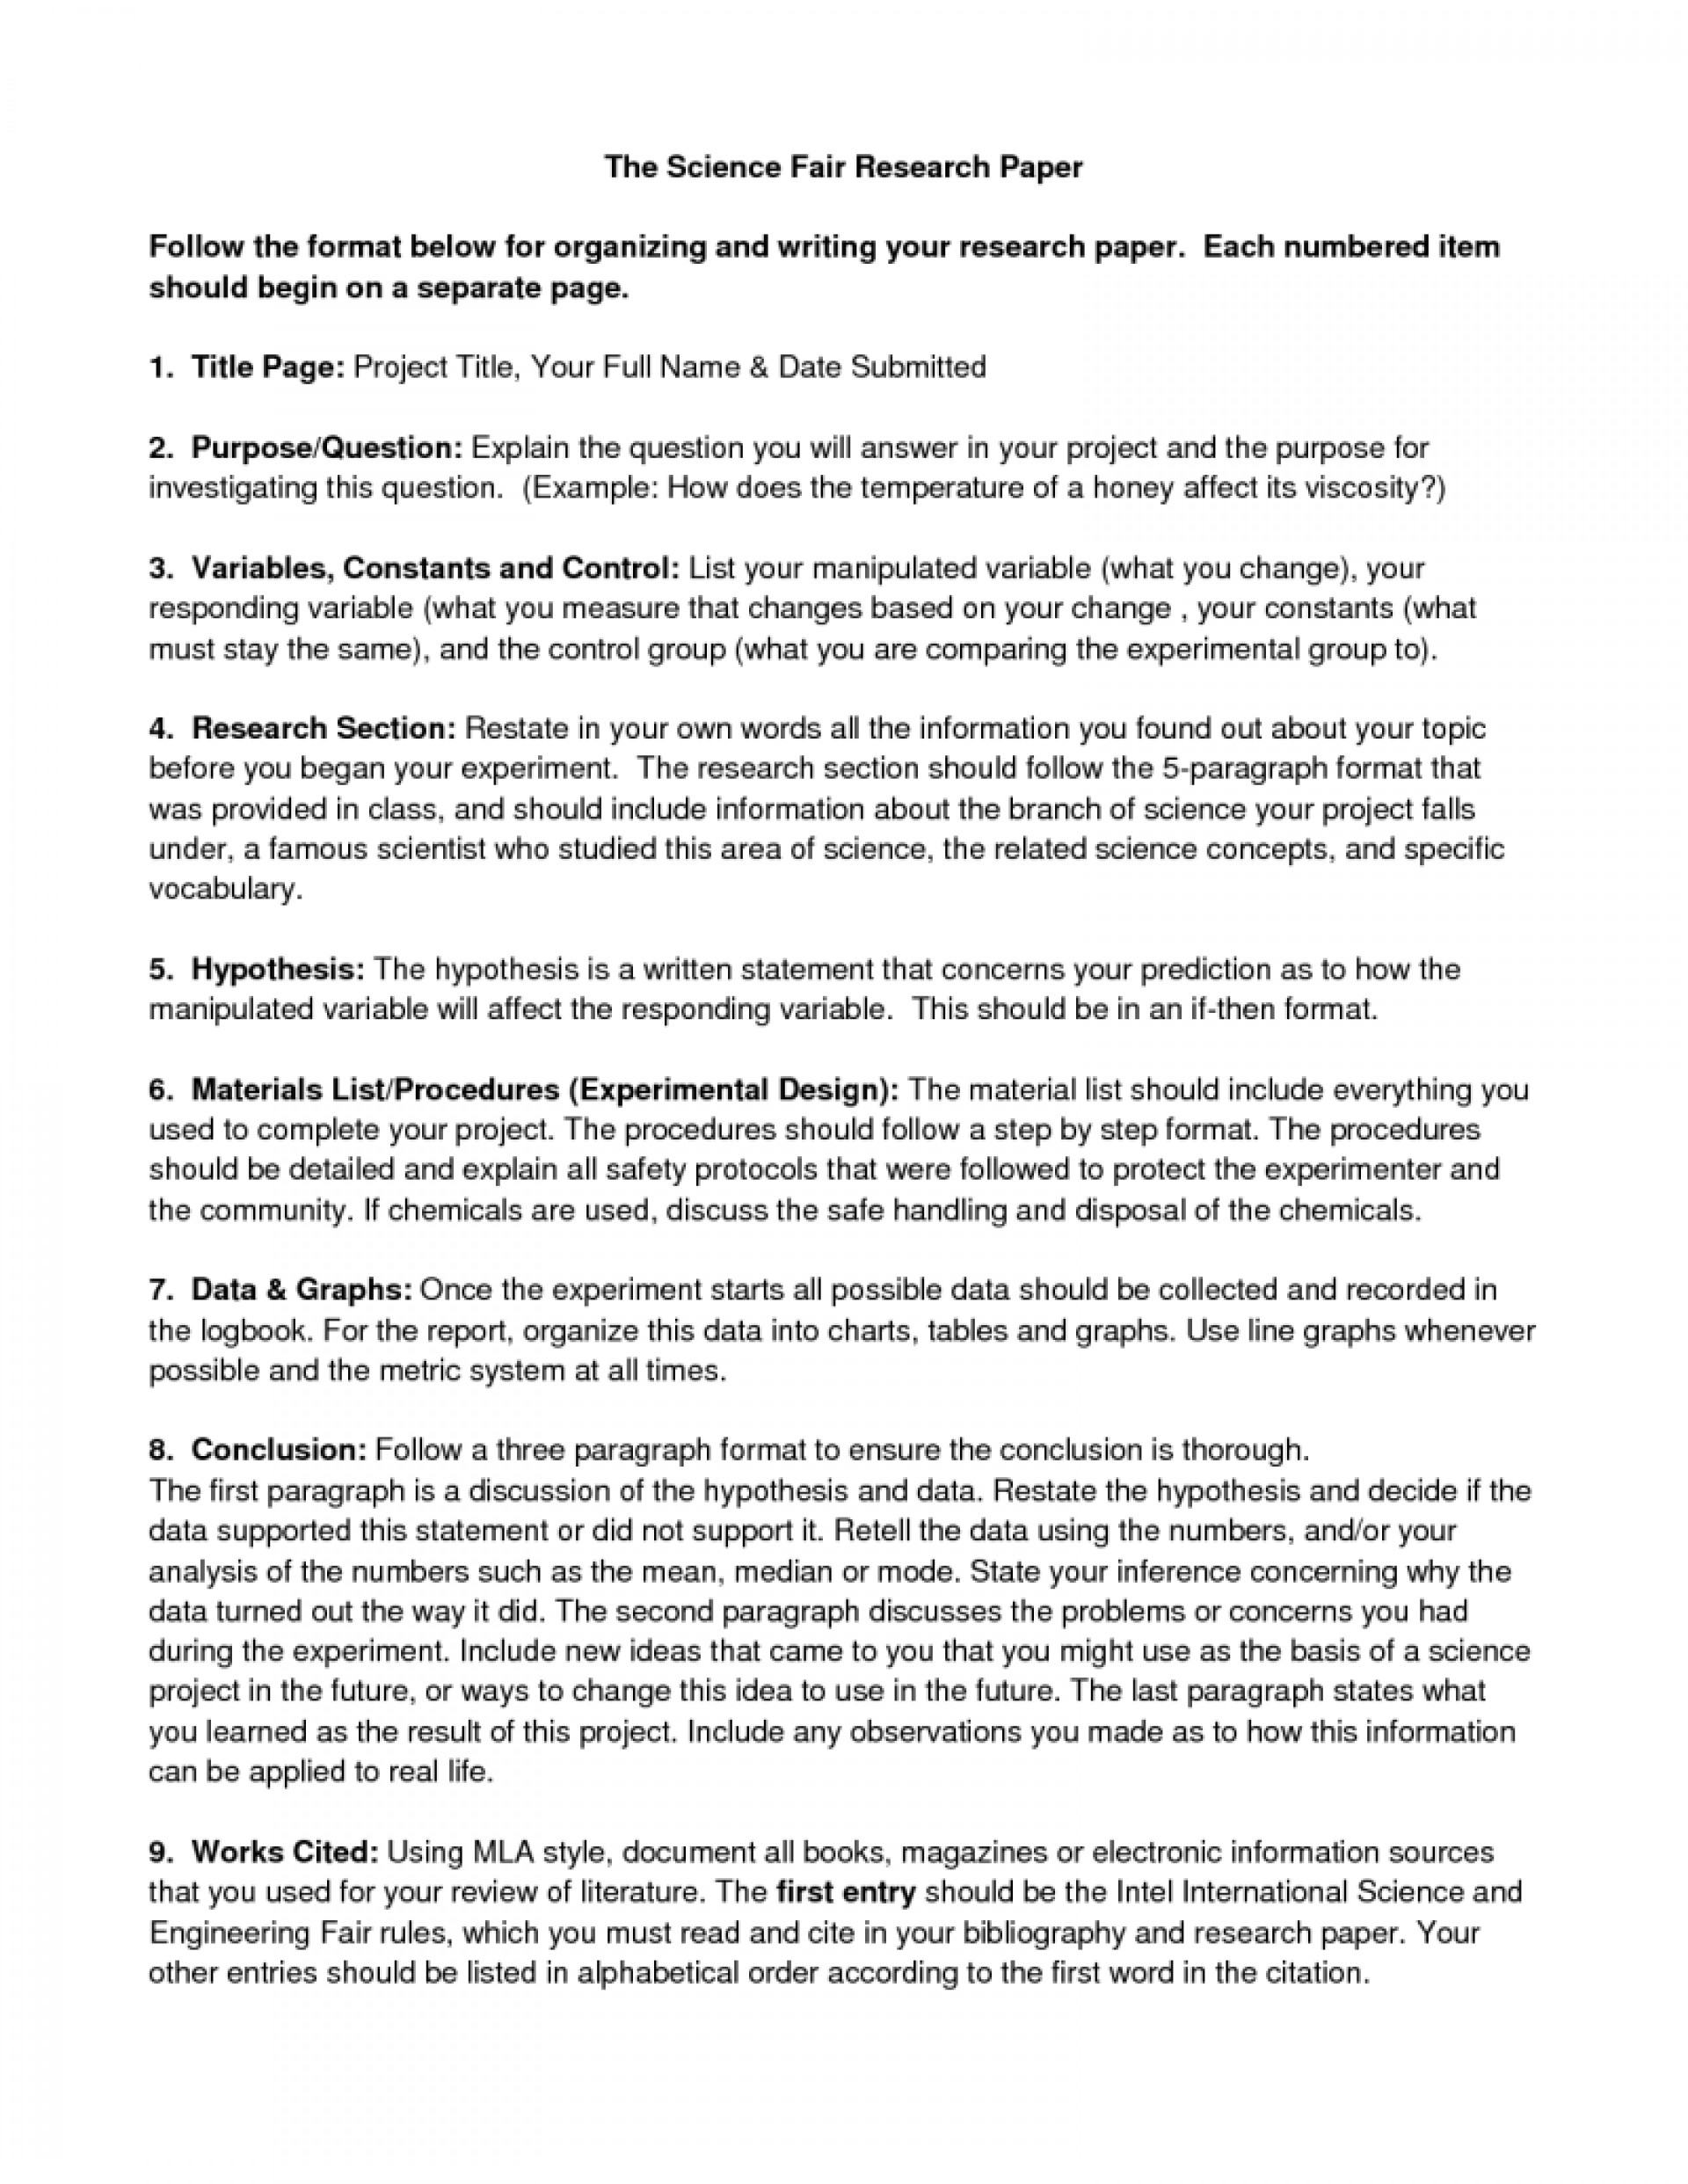 010 Ideas Of Science Fairearch Paper Outline Unique Political Guidelines Guidelinesresize8001035 Best Website To Read Papers Outstanding Research 1920